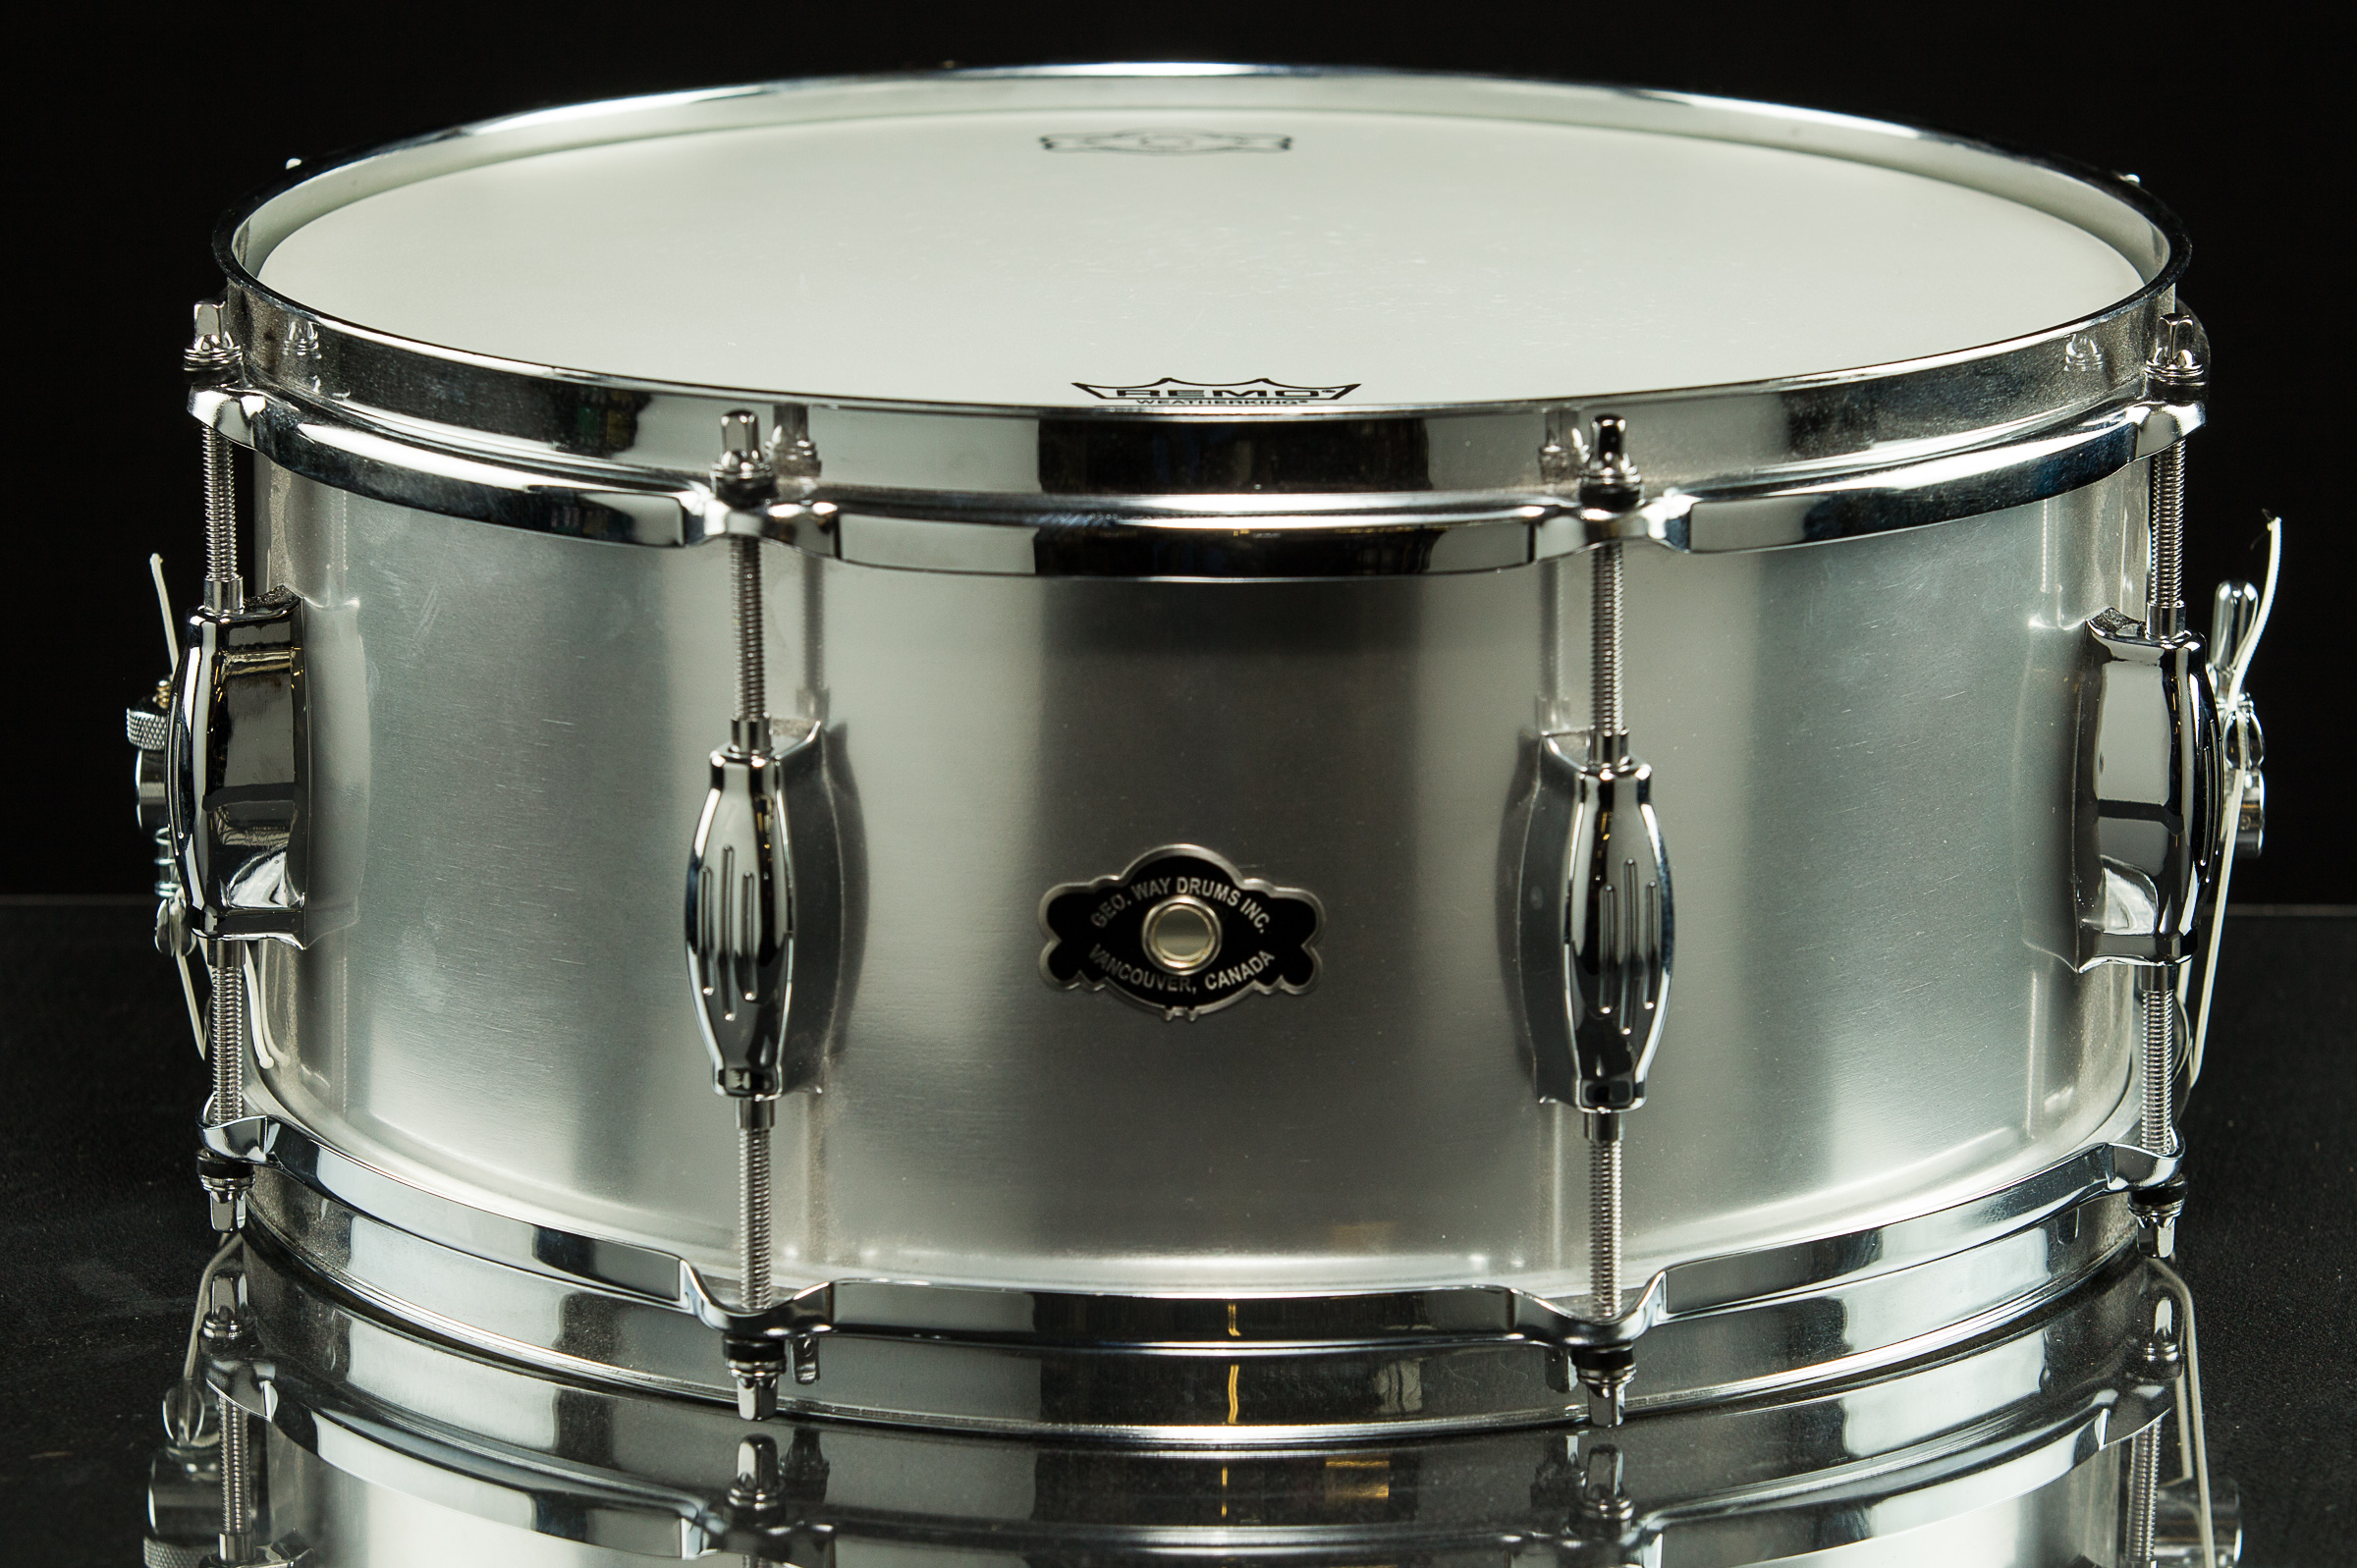 snare drums geo way 39 the aero 39 snare drum ultra thin seamless spun aluminum shell. Black Bedroom Furniture Sets. Home Design Ideas